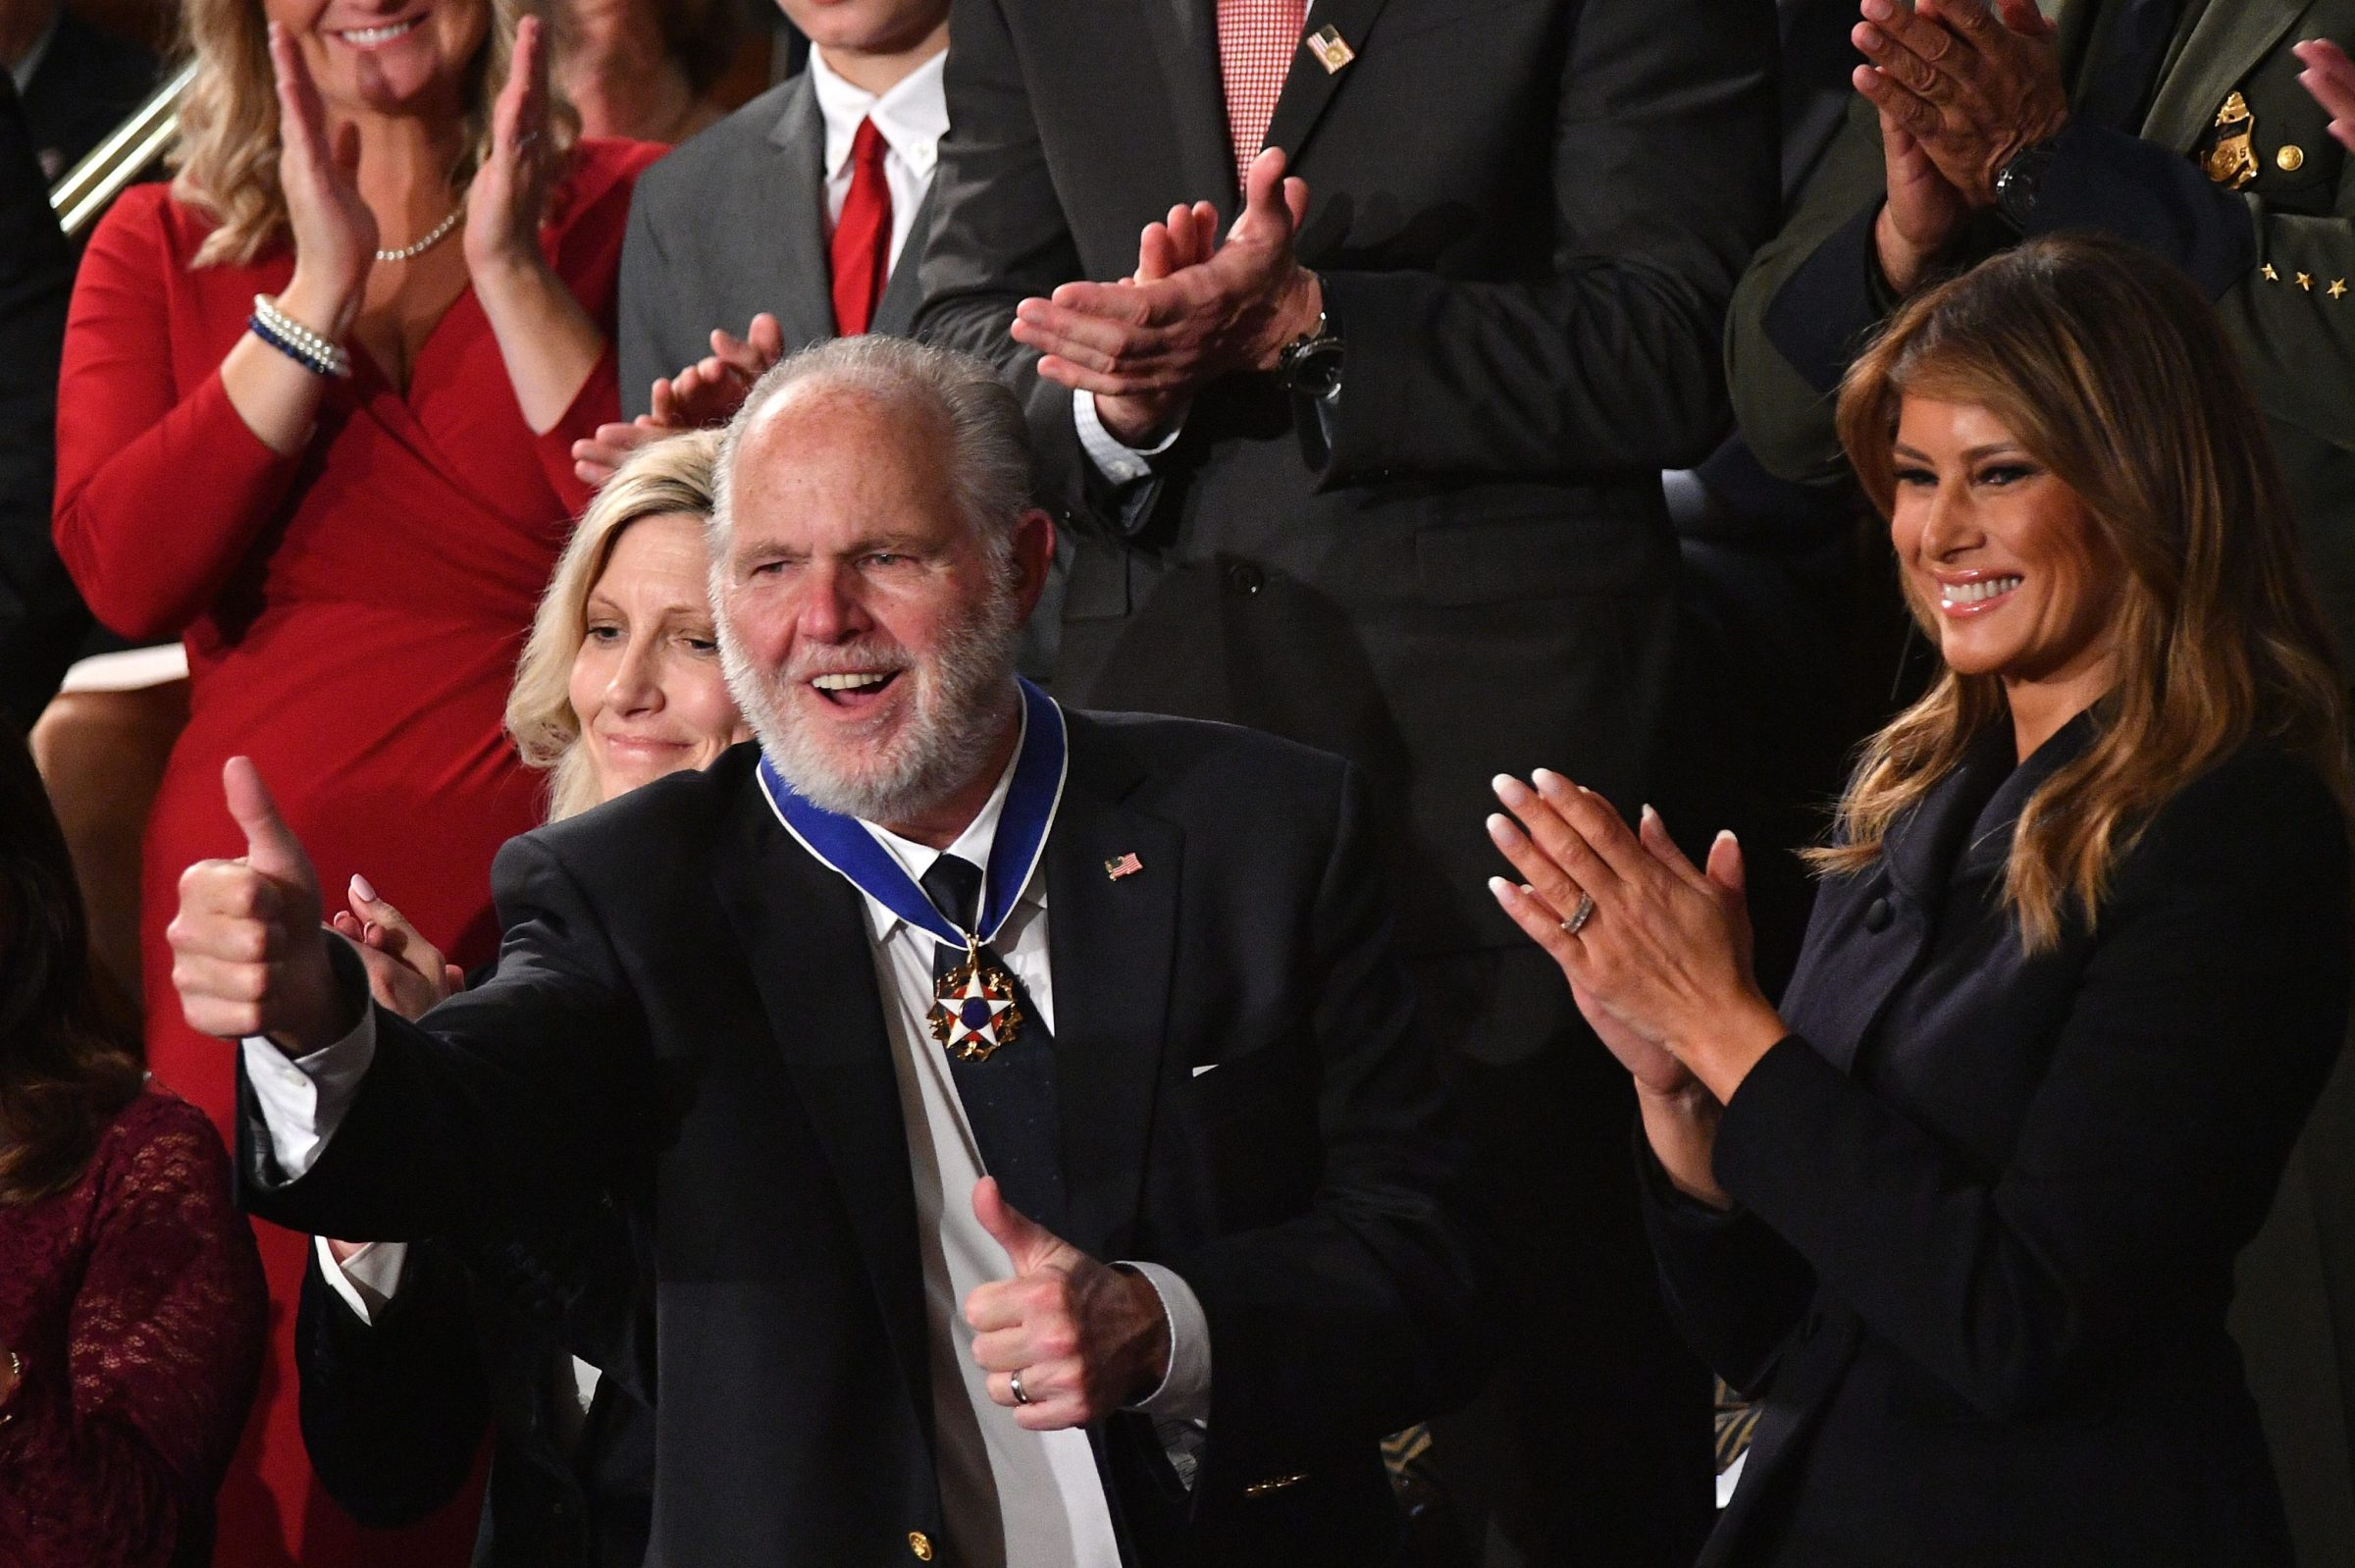 Rush Limbaugh, who has since died, celebrates after receiving the Presidential Medal of Freedom.